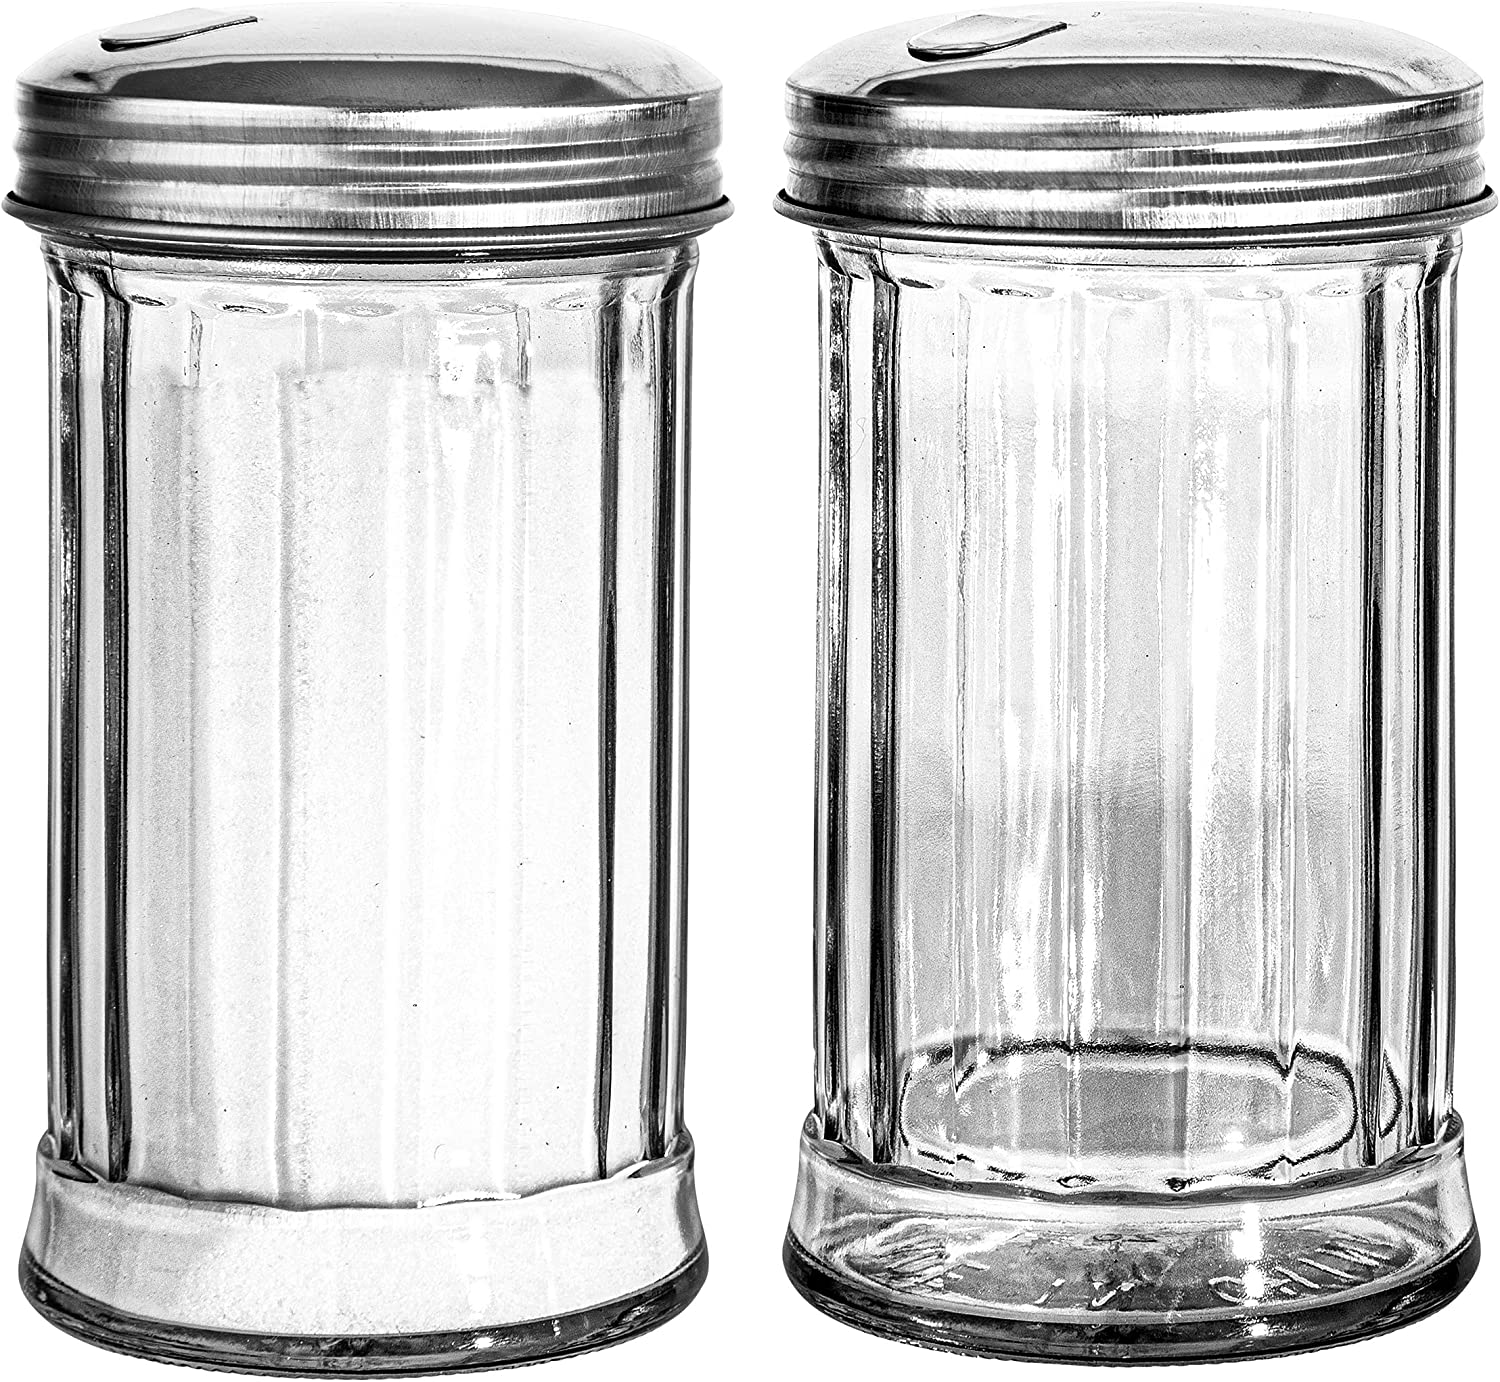 Stock Your Home Glass Sugar Dispenser (2 Pack) - Fluted Sugar Pourer with Stainless Steel Self Closing Lid - Crystal Clear Sugar Shaker for Diners, Cafes, Bakeries, Coffee Shops, Restaurants, Kitchens